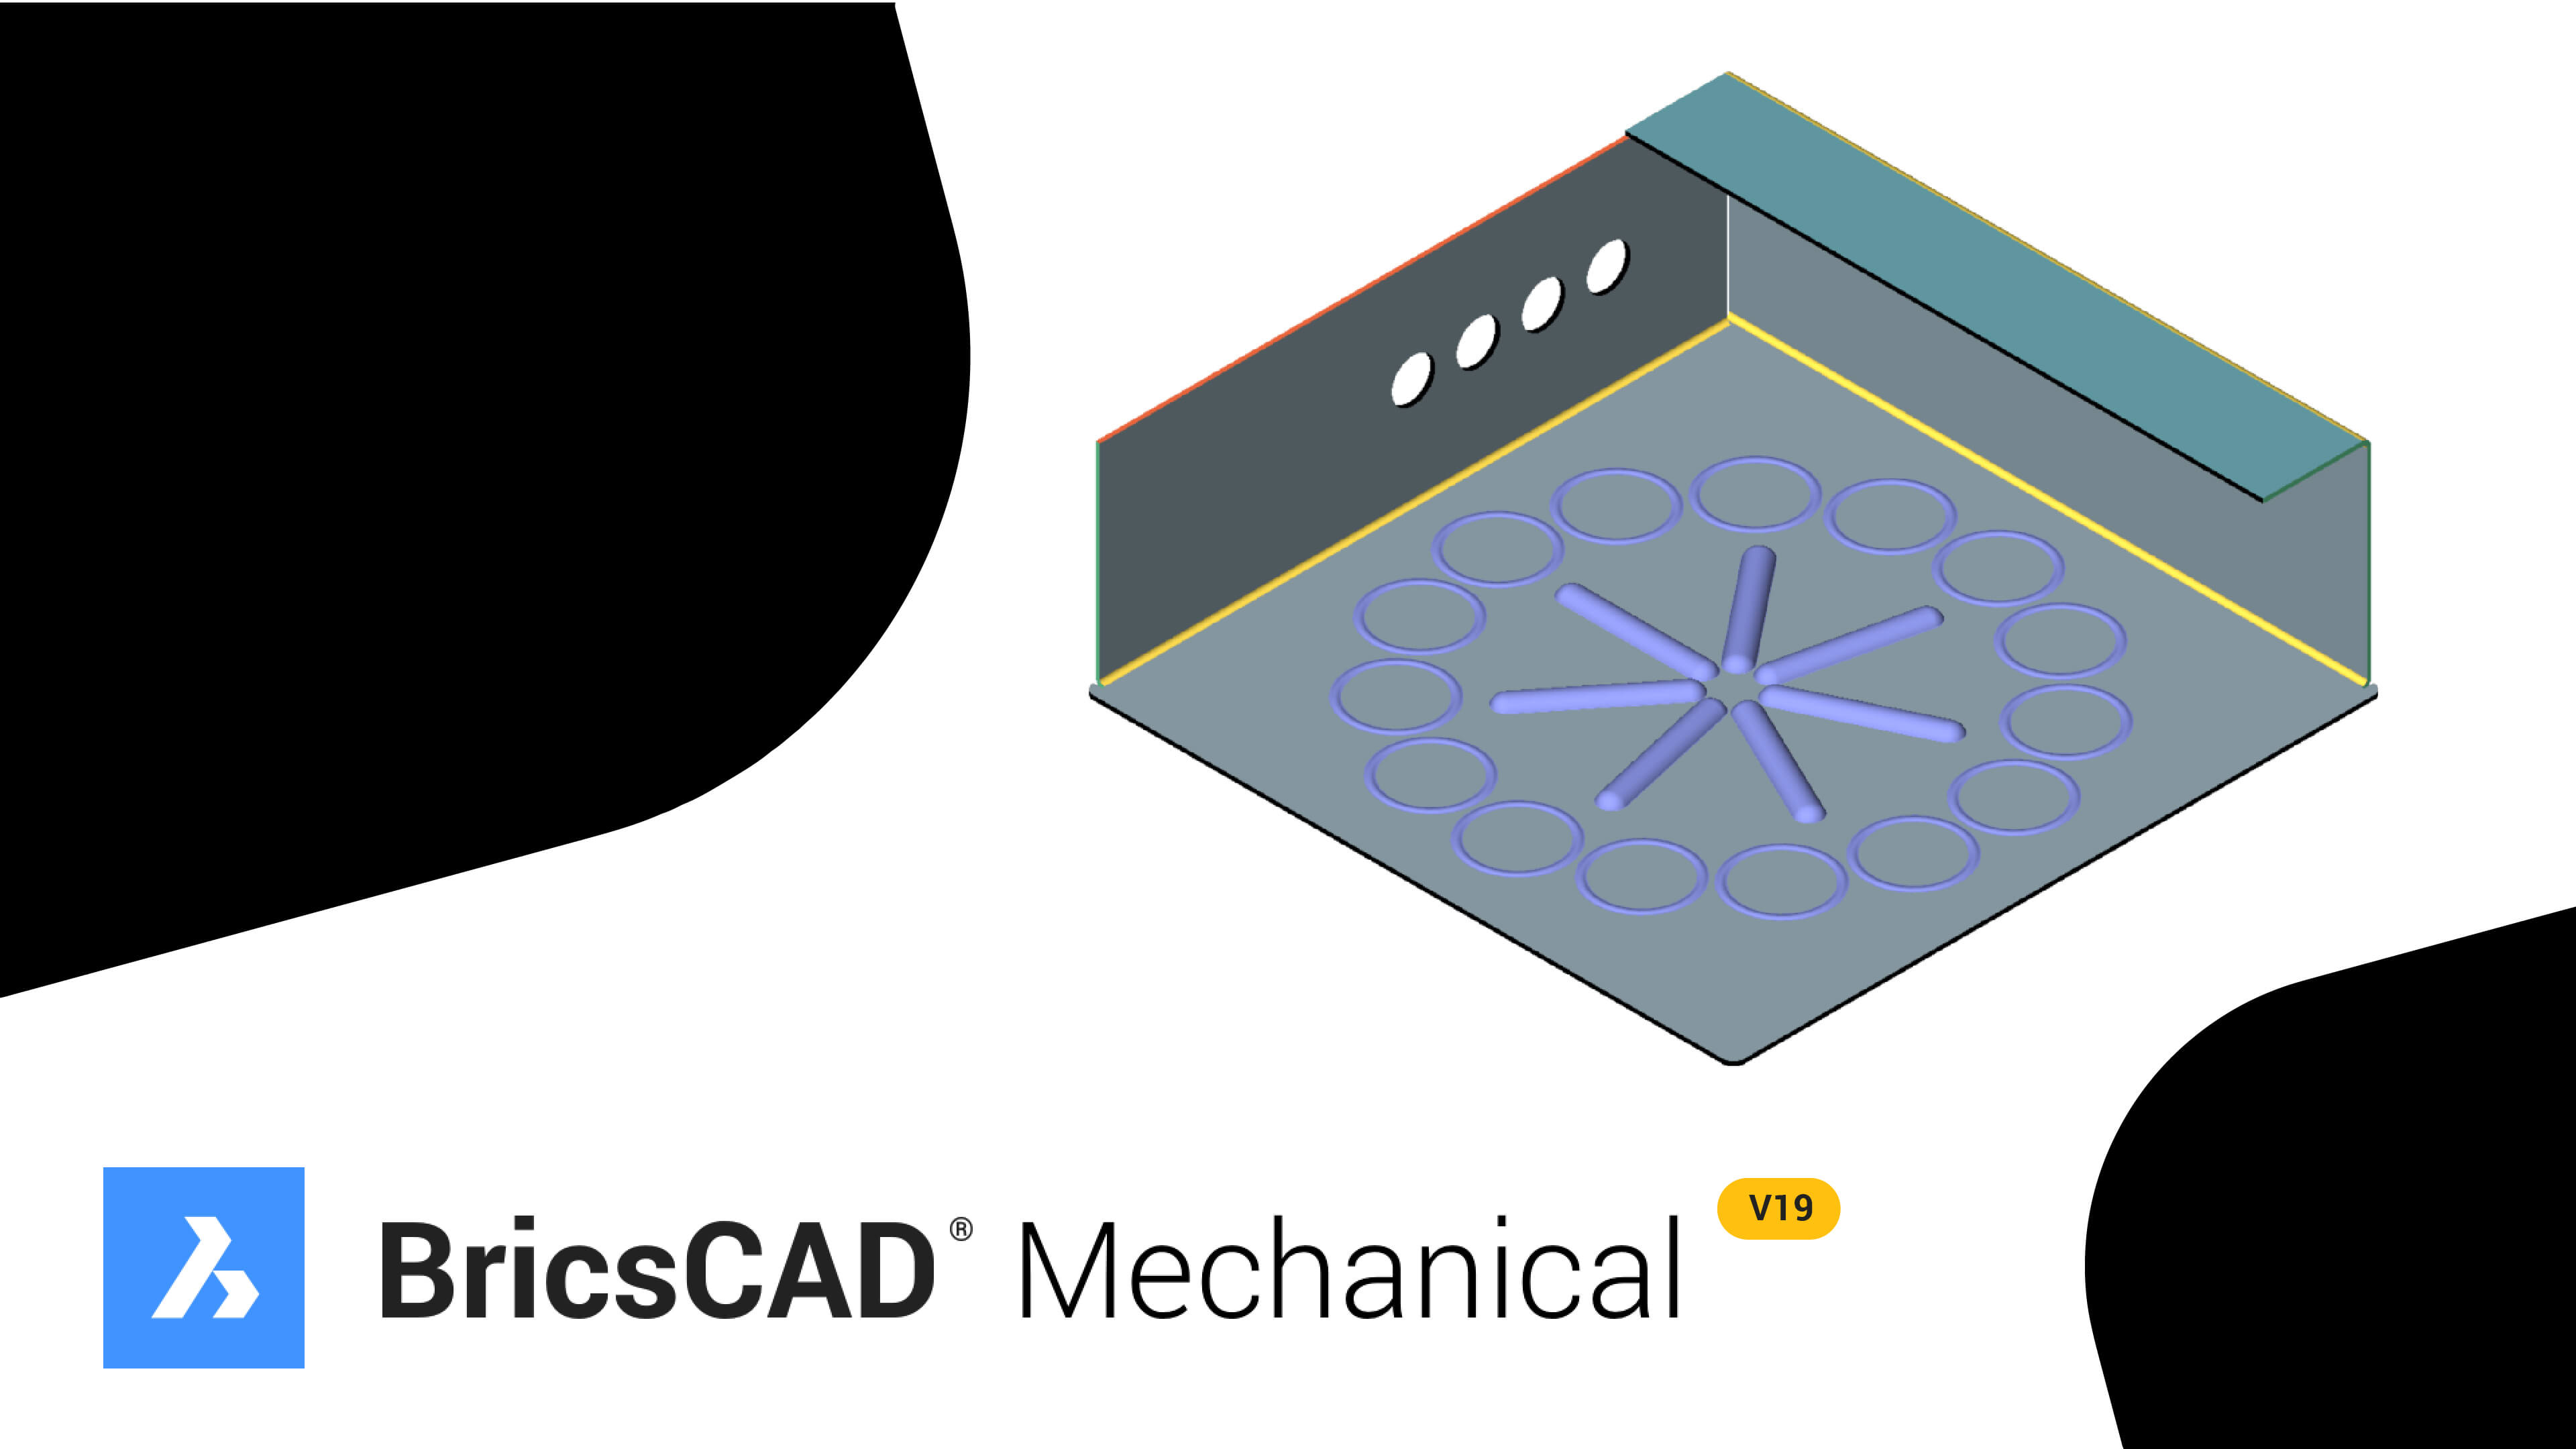 Introducing BricsCAD® Mechanical – Sheet Metal